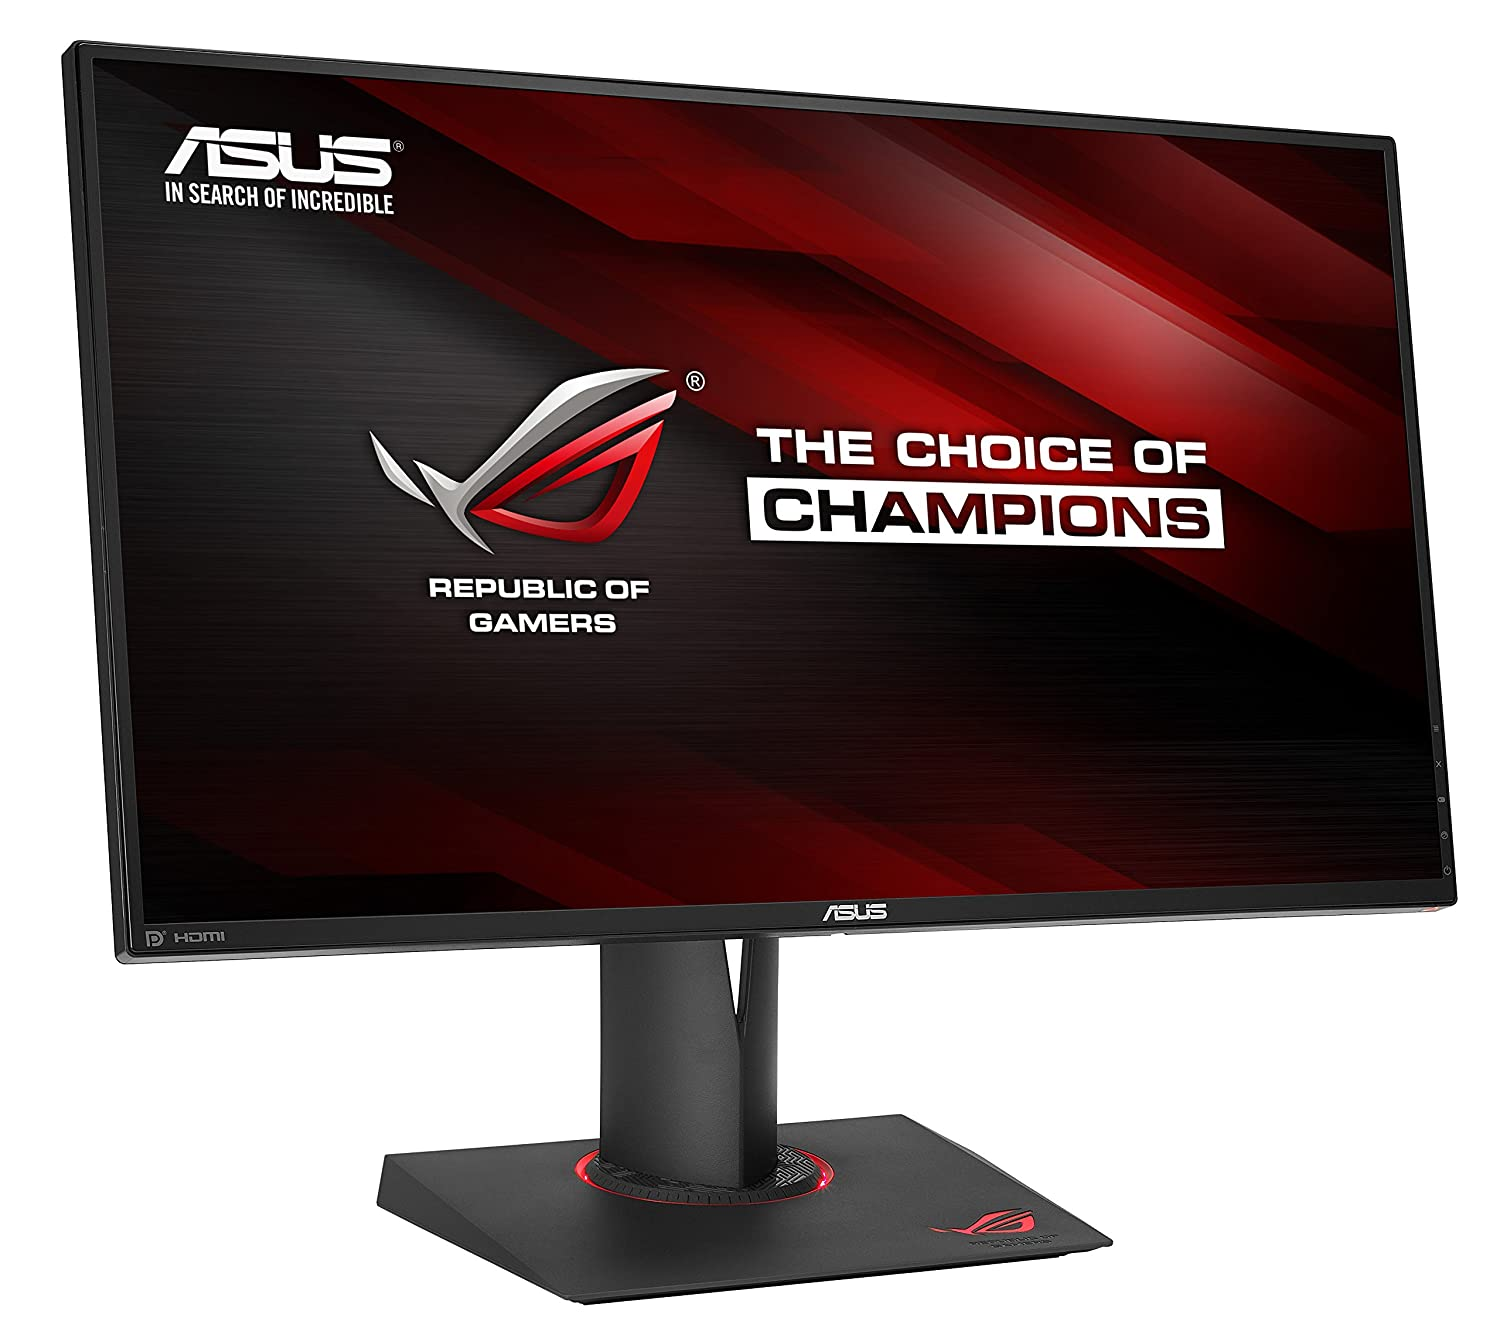 The Best Asus Monitor for Gaming?